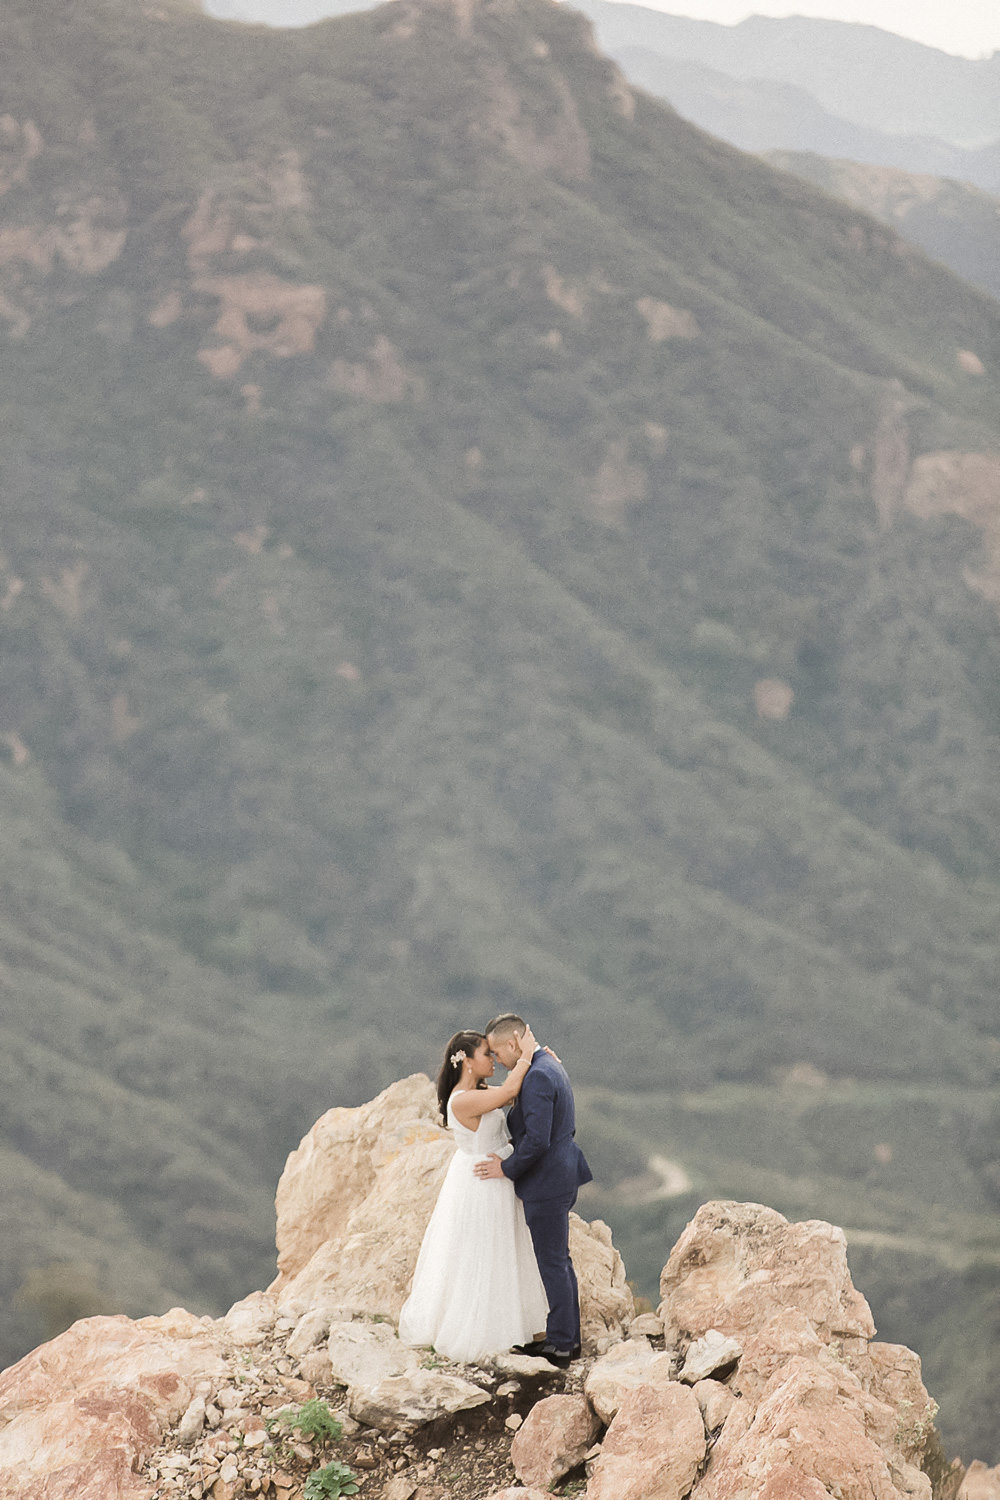 wedding-photography-malibu-rocky-oaks-estates-los-angeles-photography-portraits-001_2.jpg